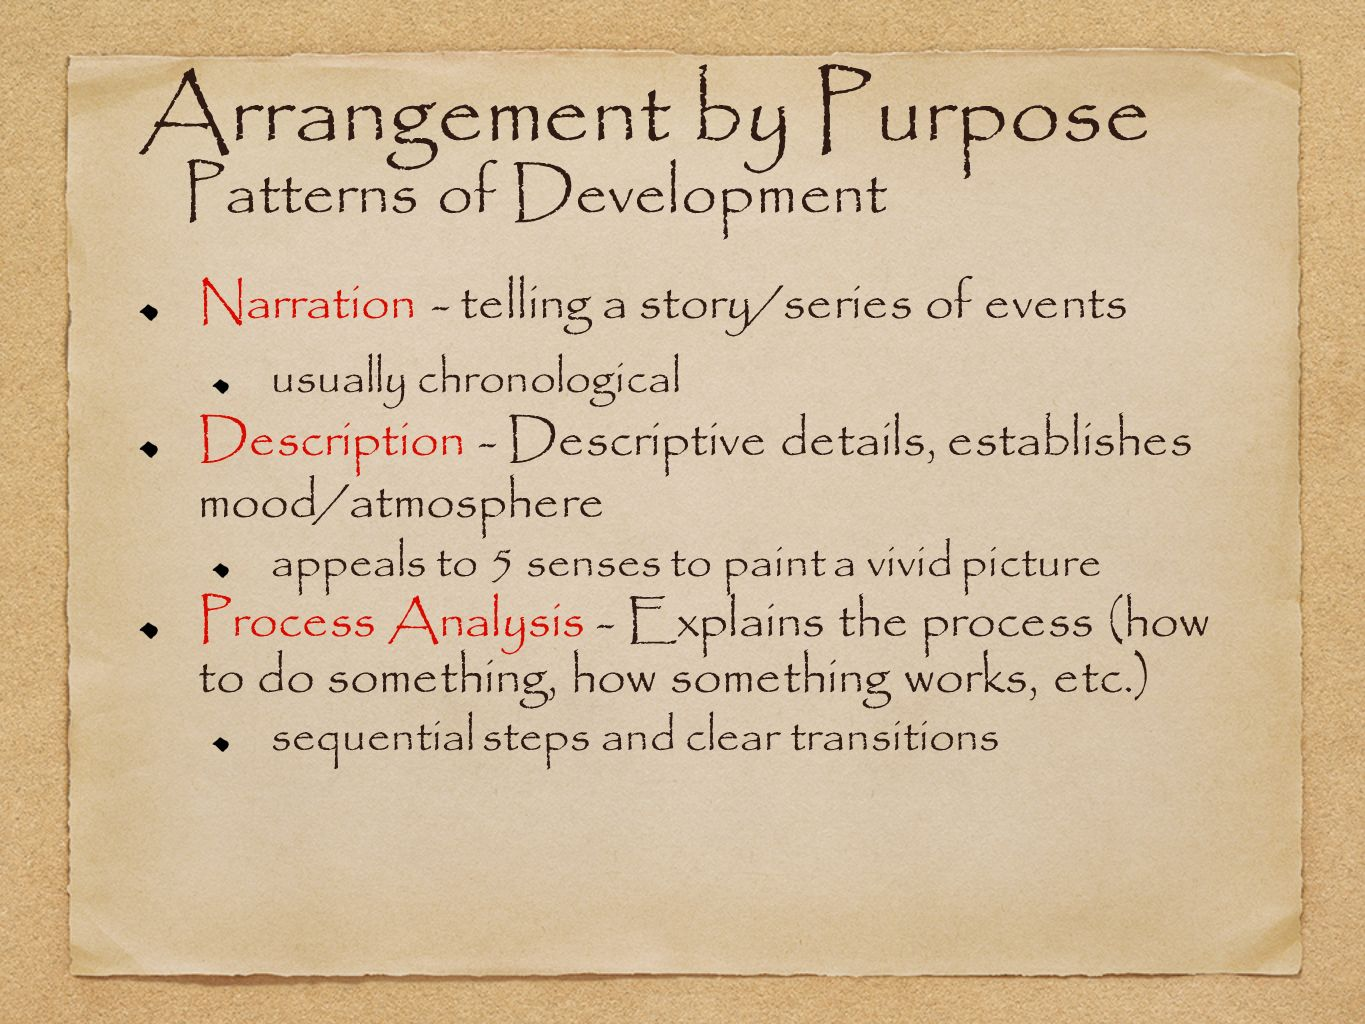 Arrangement by Purpose Patterns of Development Narration - telling a story/series of events usually chronological Description - Descriptive details, establishes mood/atmosphere appeals to 5 senses to paint a vivid picture Process Analysis - Explains the process (how to do something, how something works, etc.) sequential steps and clear transitions